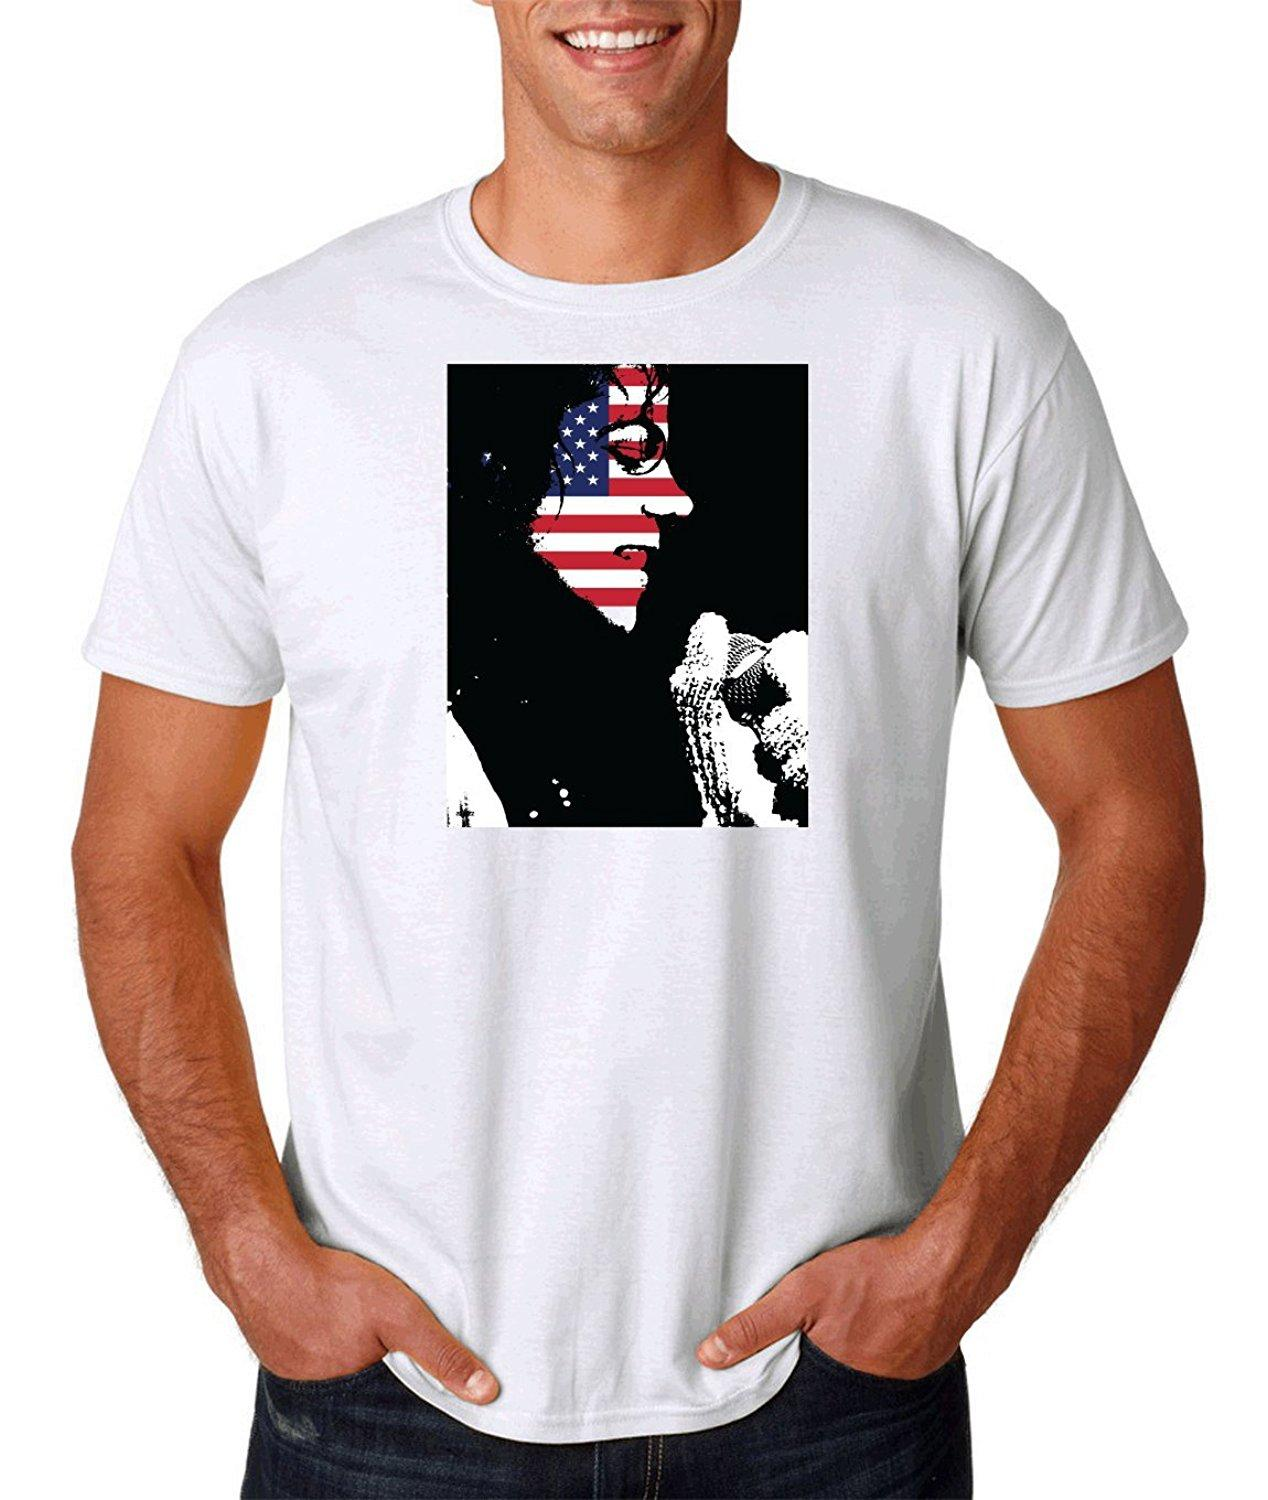 Printed t shirt cheap price o neck men casual short for Where to get t shirts printed cheap